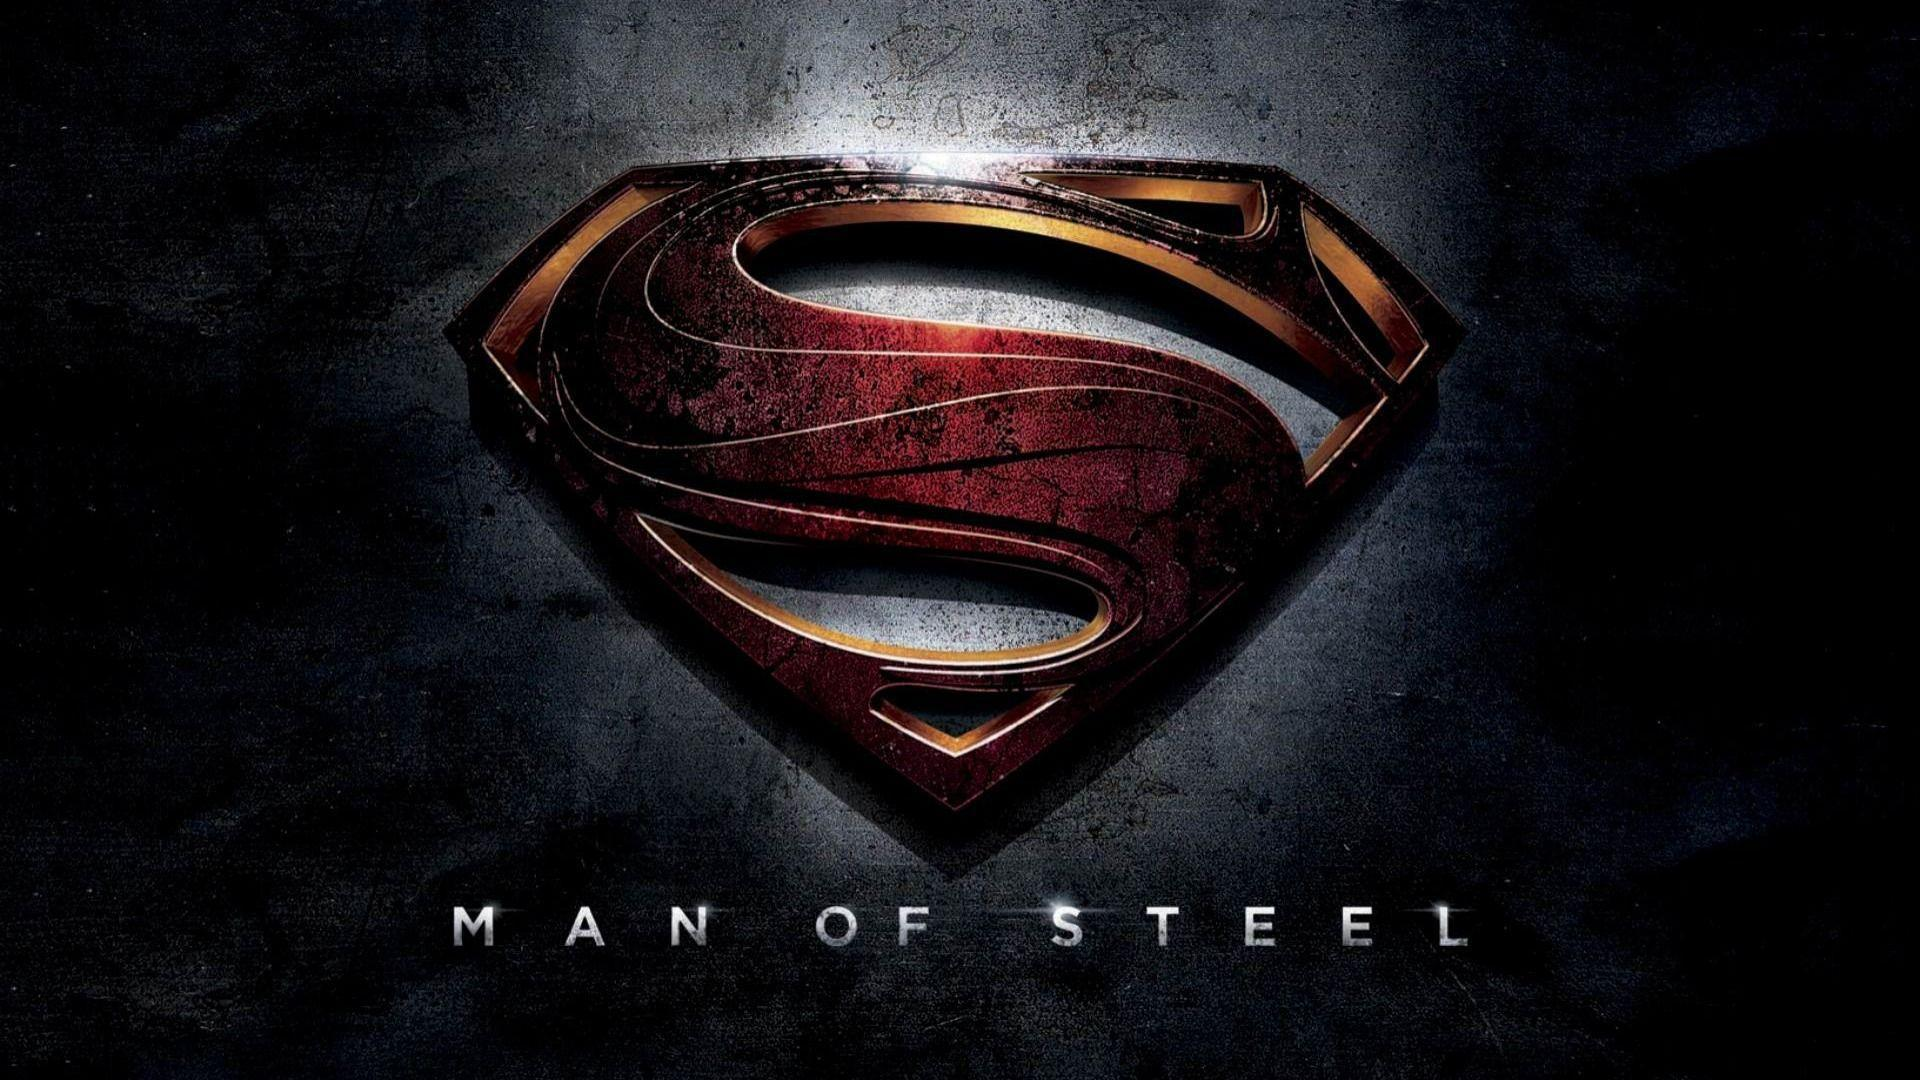 man of steel wallpapers, superman symbol wallpaper